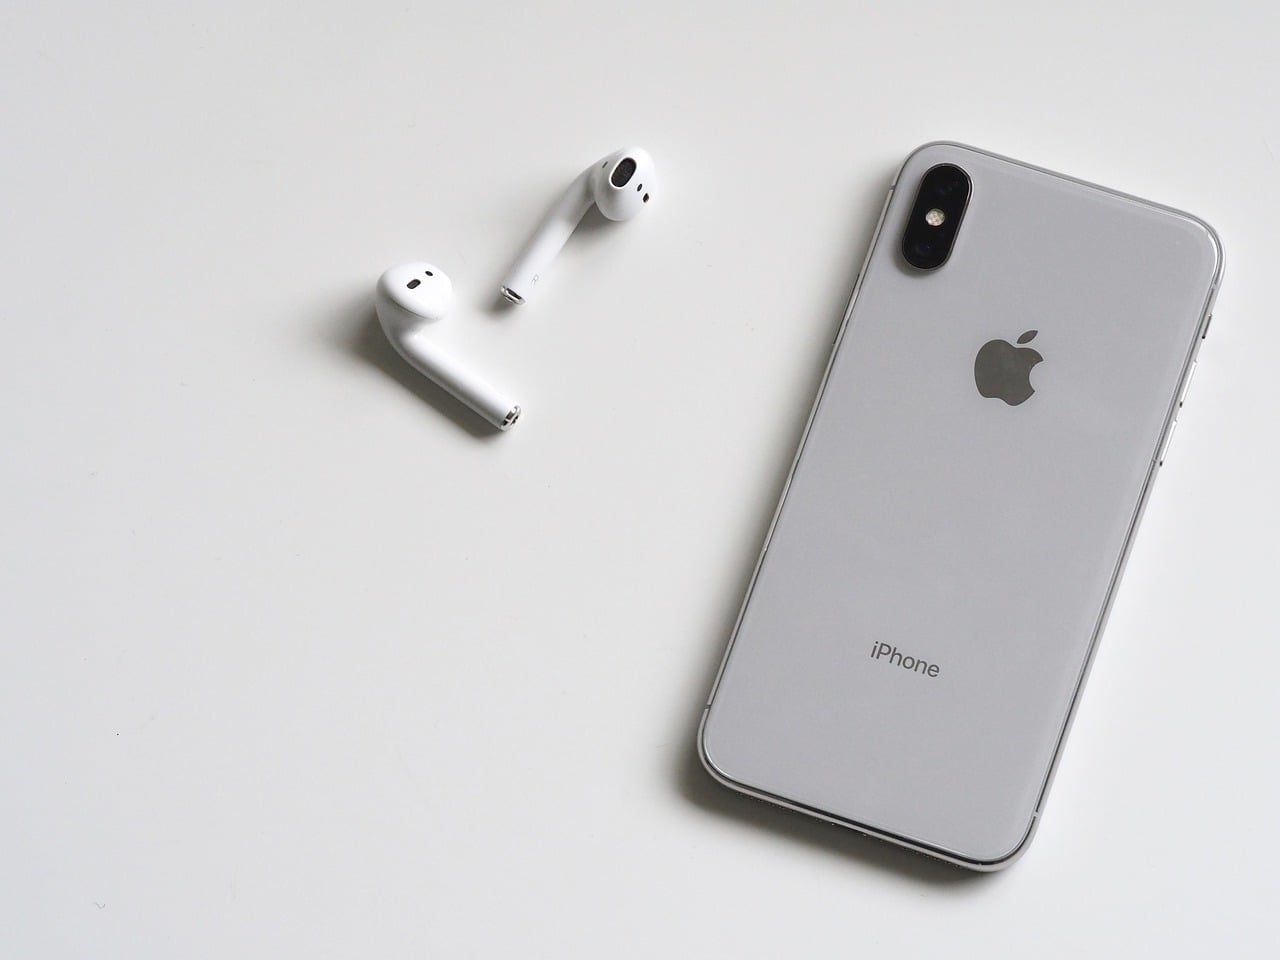 Waterproof AirPods 3 With Noise-Cancellation Could Launch This Year